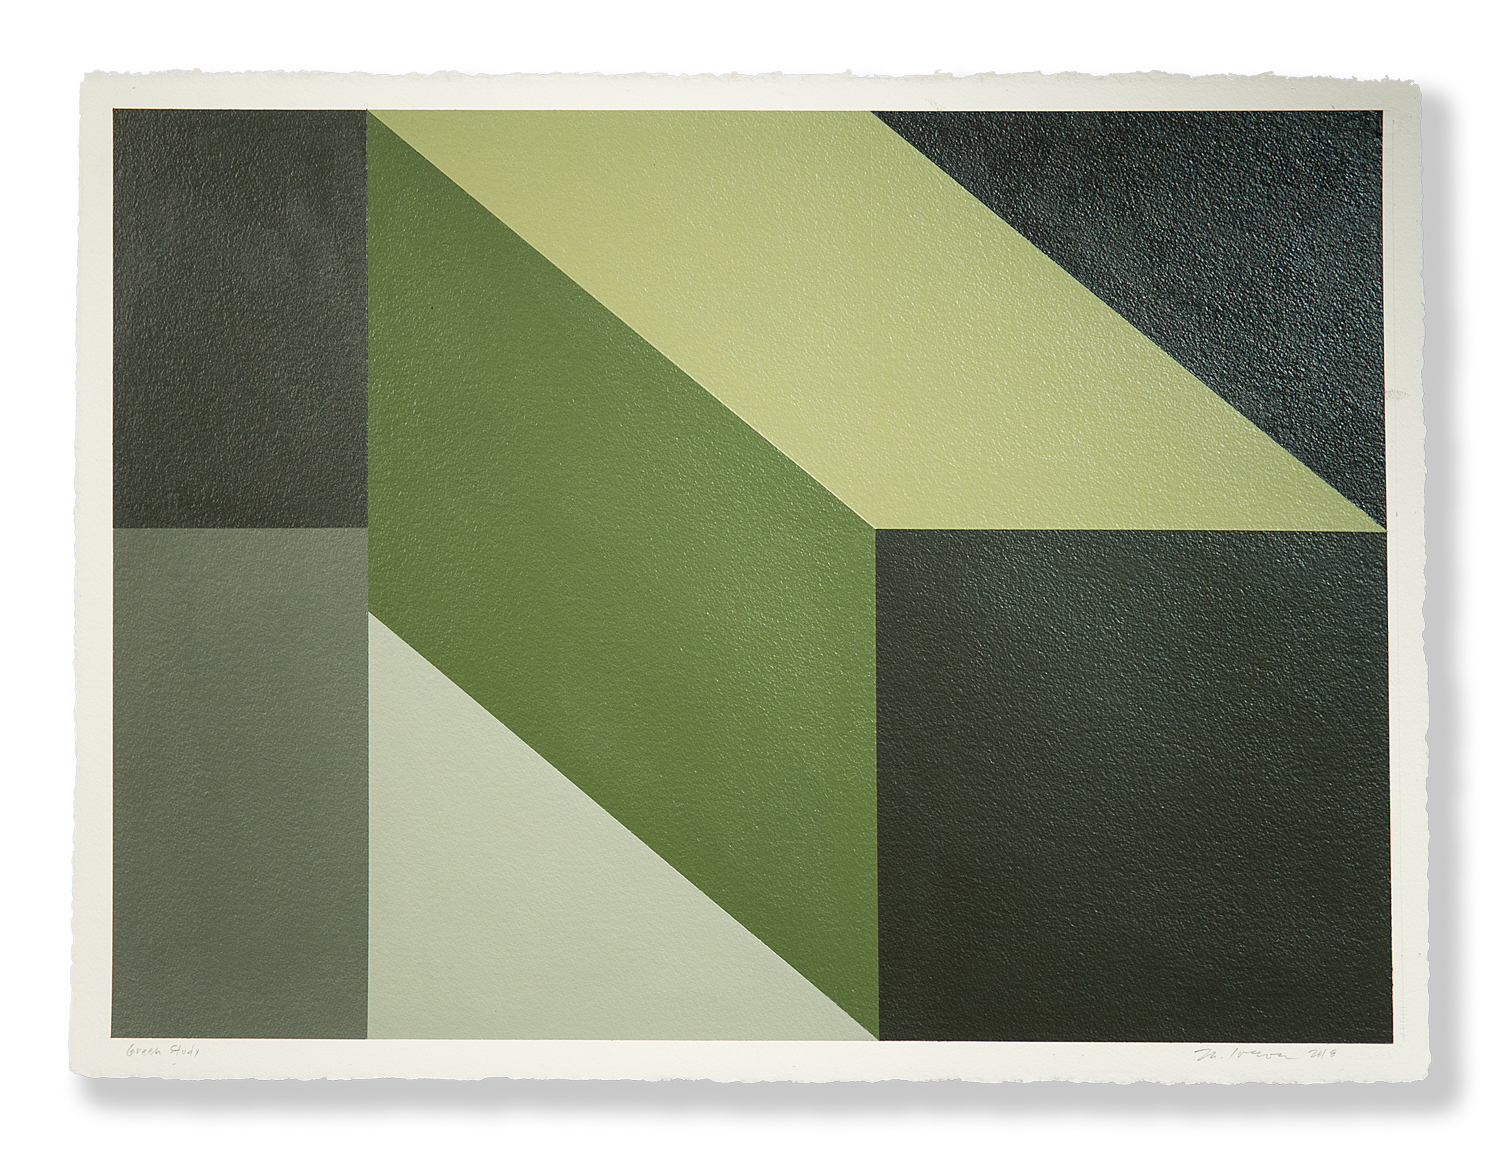 Mary Iverson - Green Study (2018)